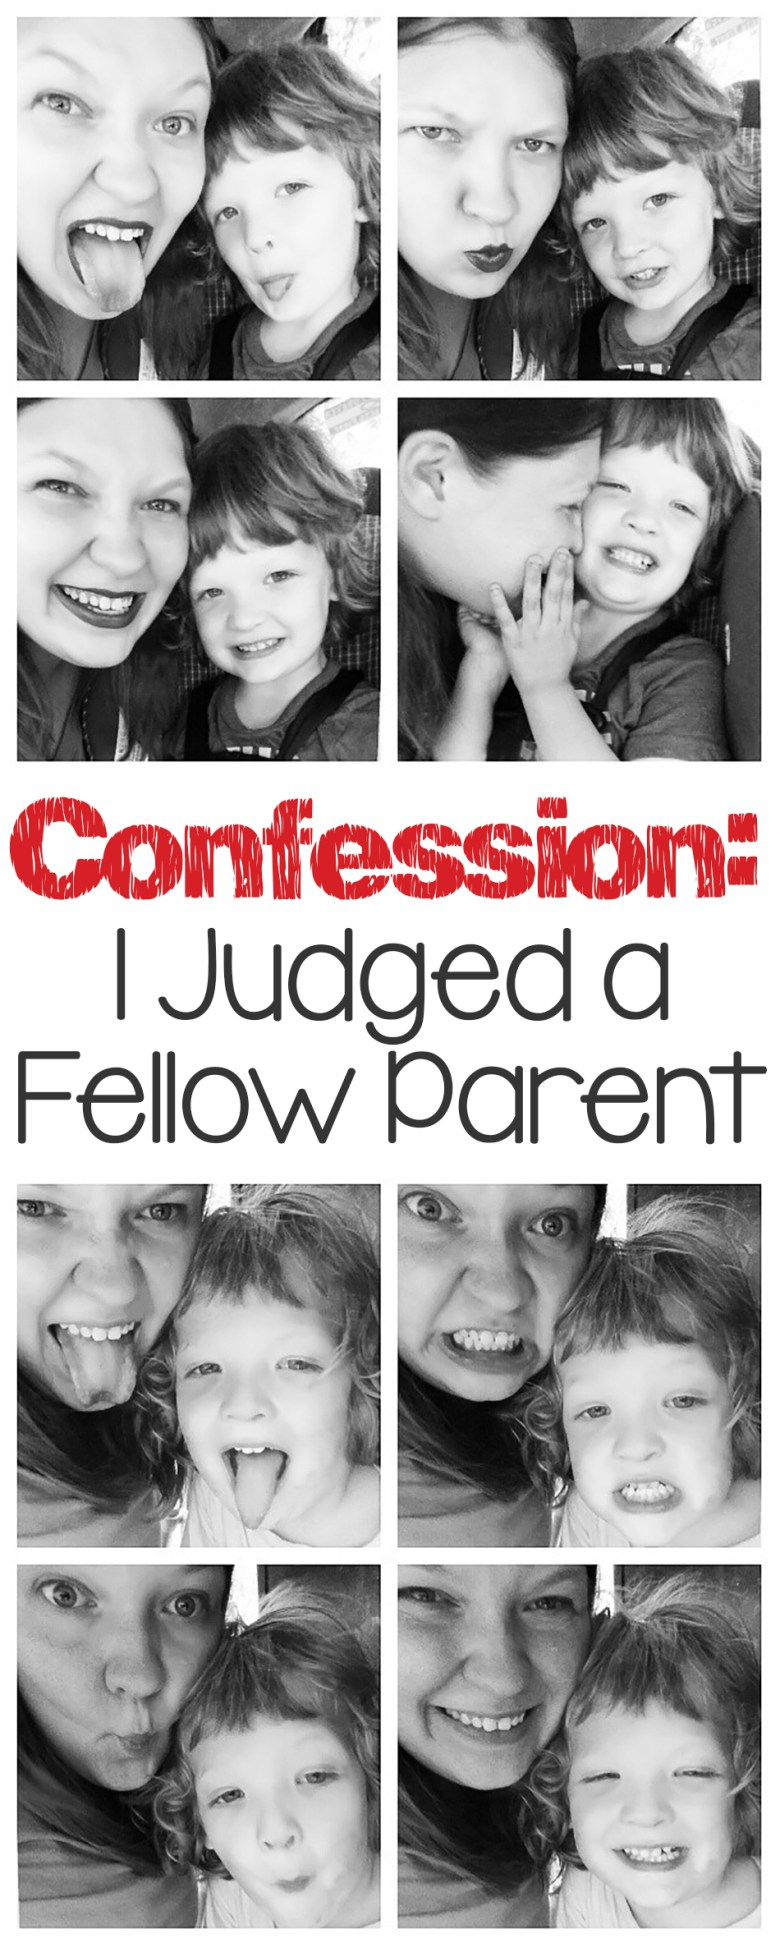 I judged a fellow parent recently-- have you been there, done that? It can be hard not to pass judgment when people have different views and parenting styles, so how do you handle it?